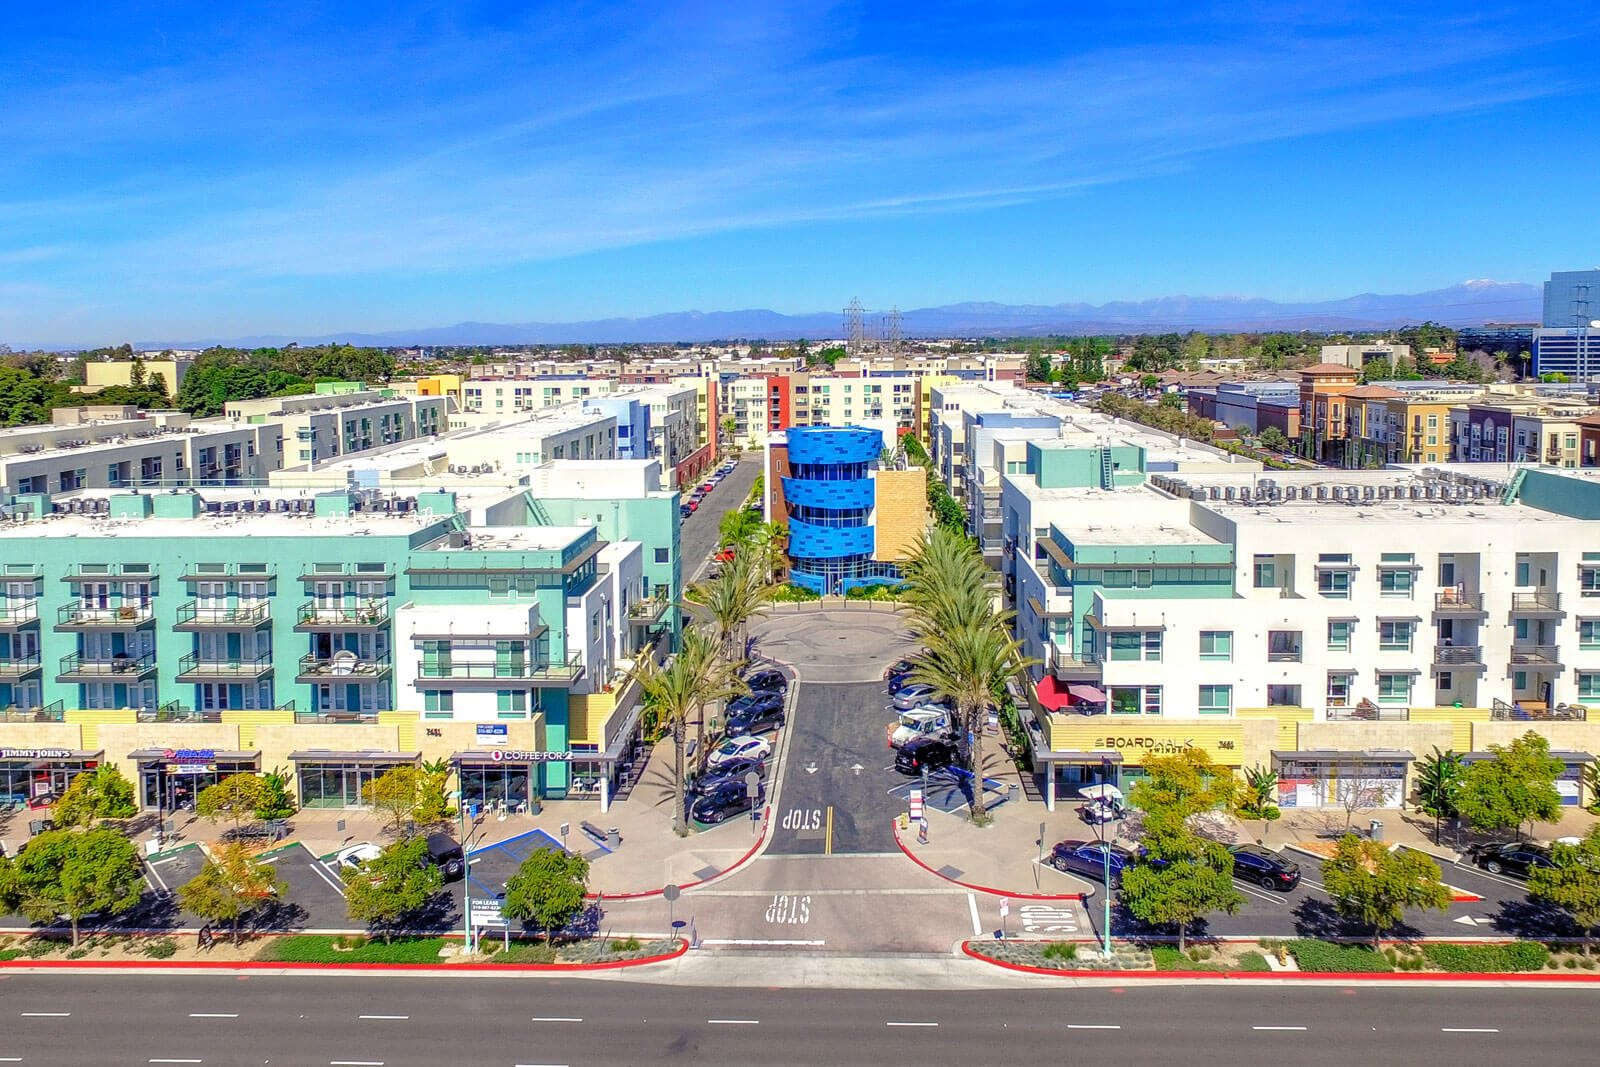 Come Visit Our Leasing Office at Boardwalk by Windsor, 7461 Edinger Ave., CA